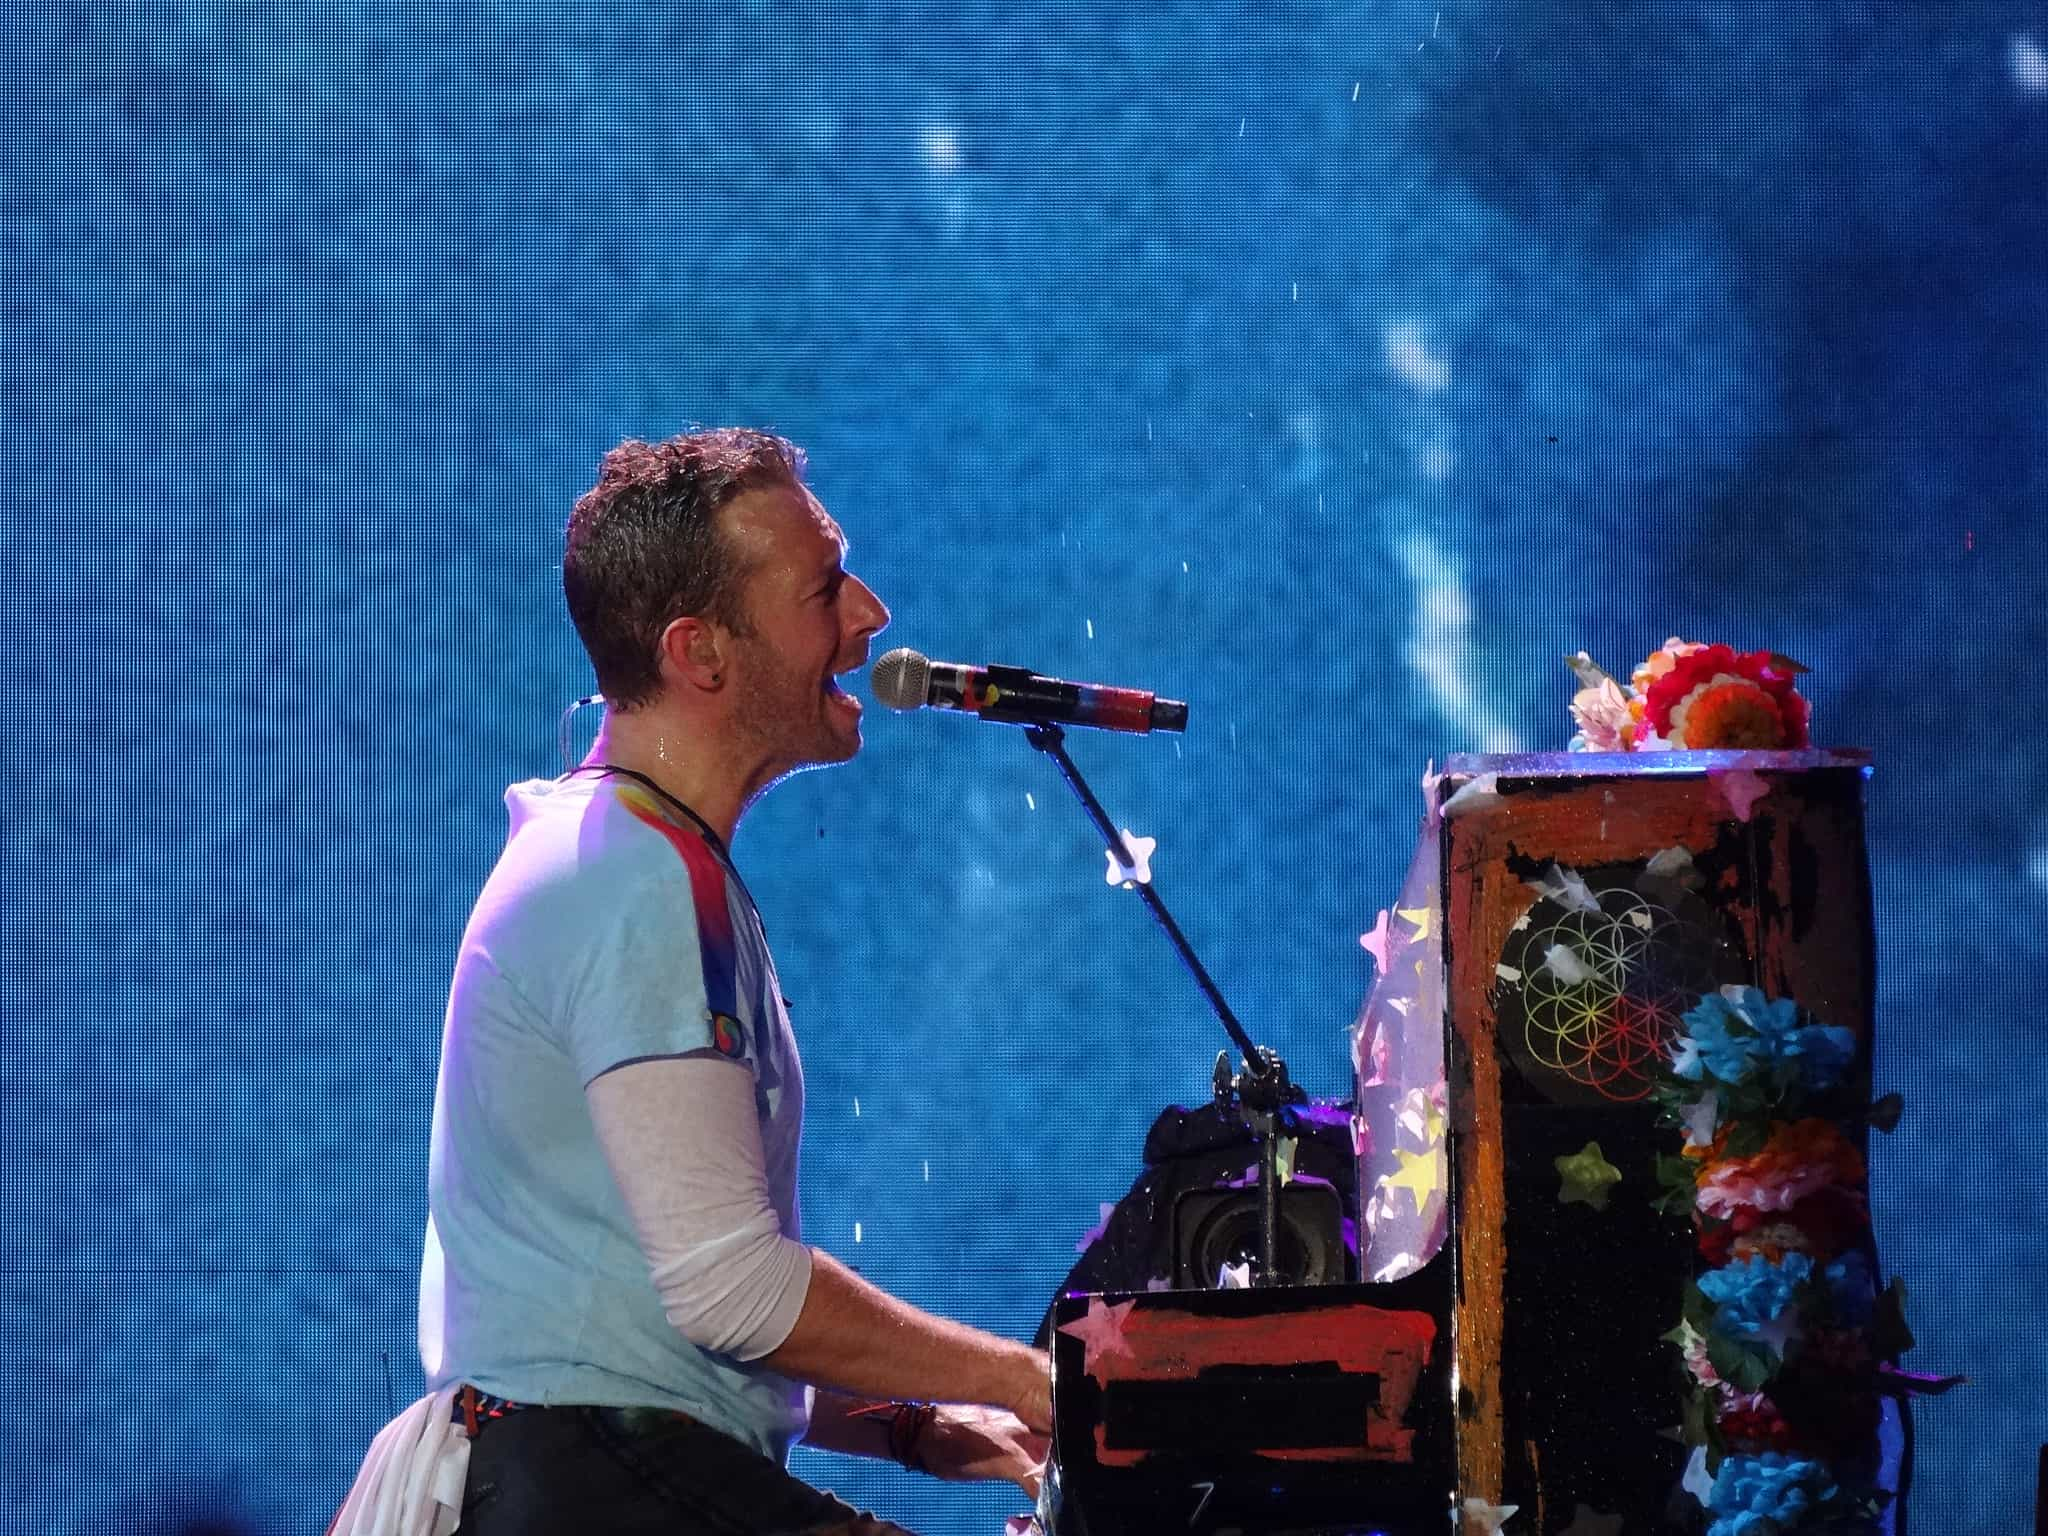 Chris martin playing piano and singing on stage